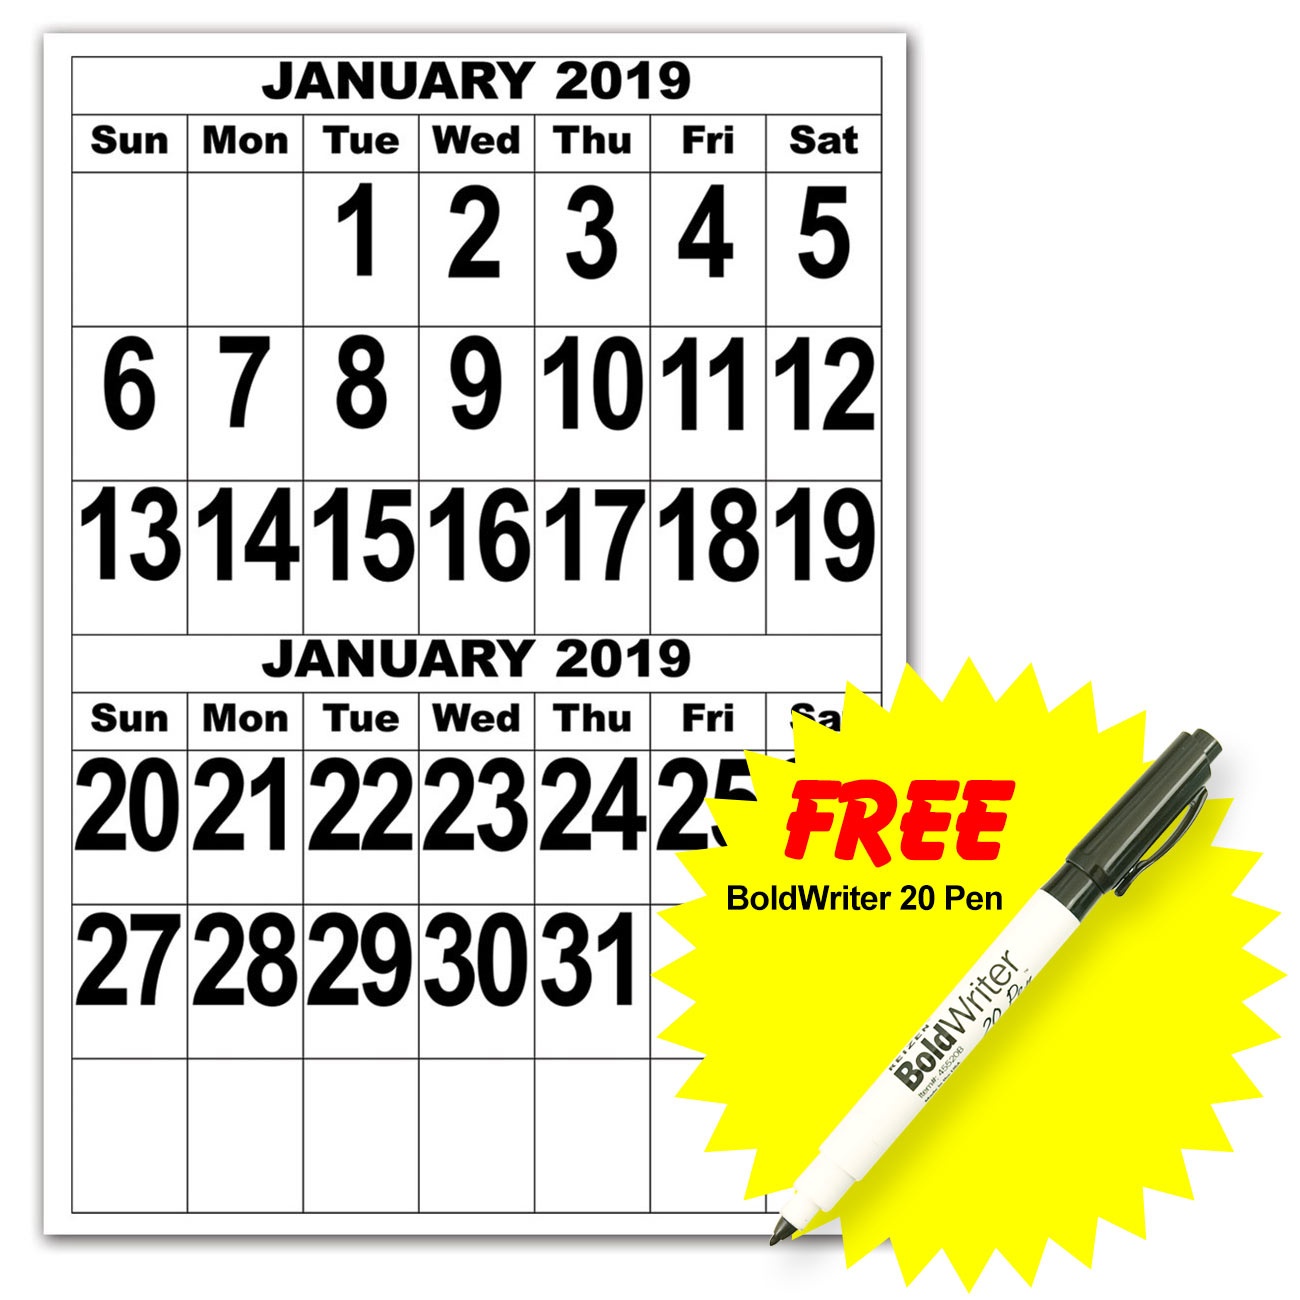 Giant Print Calendar - 2019 with BoldWriter 20 Pen